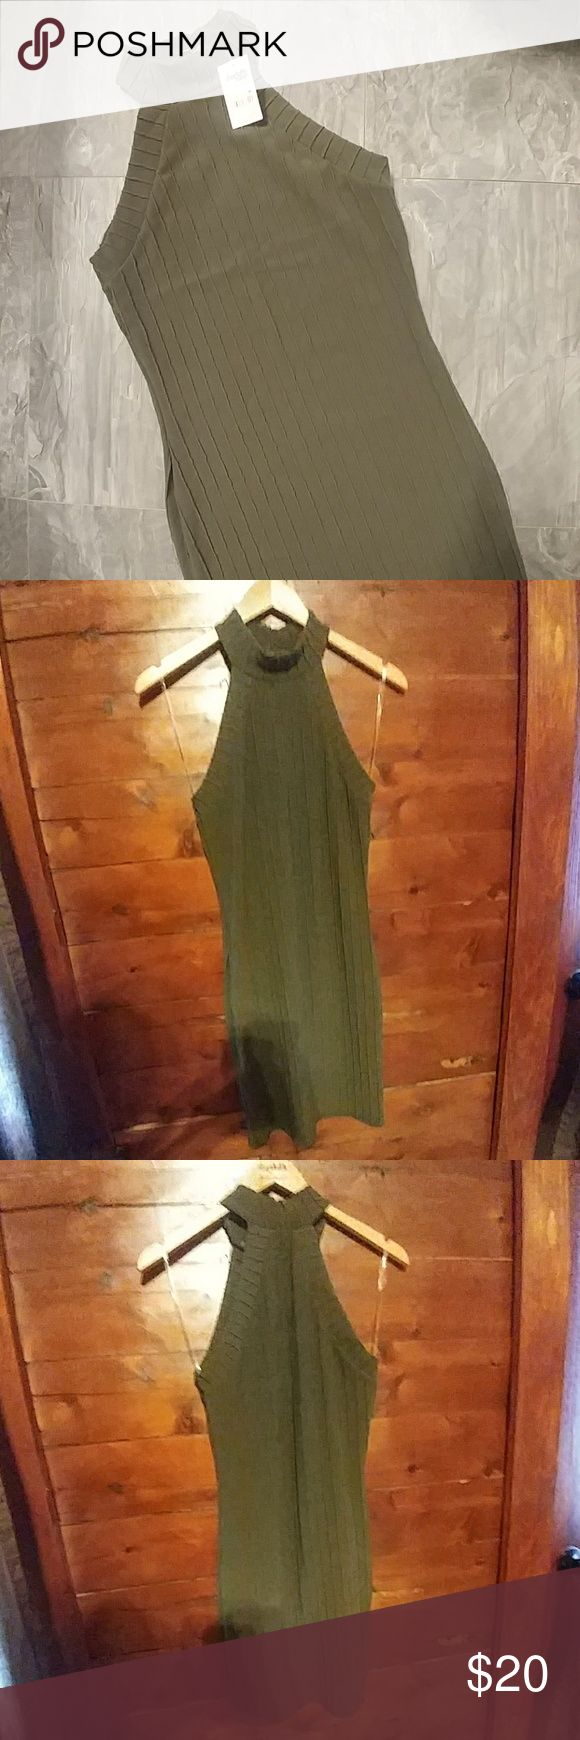 Olive Green Bodycon *NWT* Olive green bodycon great for a night out!  Material is stretchy but definitely fitted as it is a bodycon.  Material has vertical quilted stripes on it.  Mock neck, racerback.  Hits about mid thigh.   Smoke free home No trades, willing to bundle and take offers! Charlotte Russe Dresses